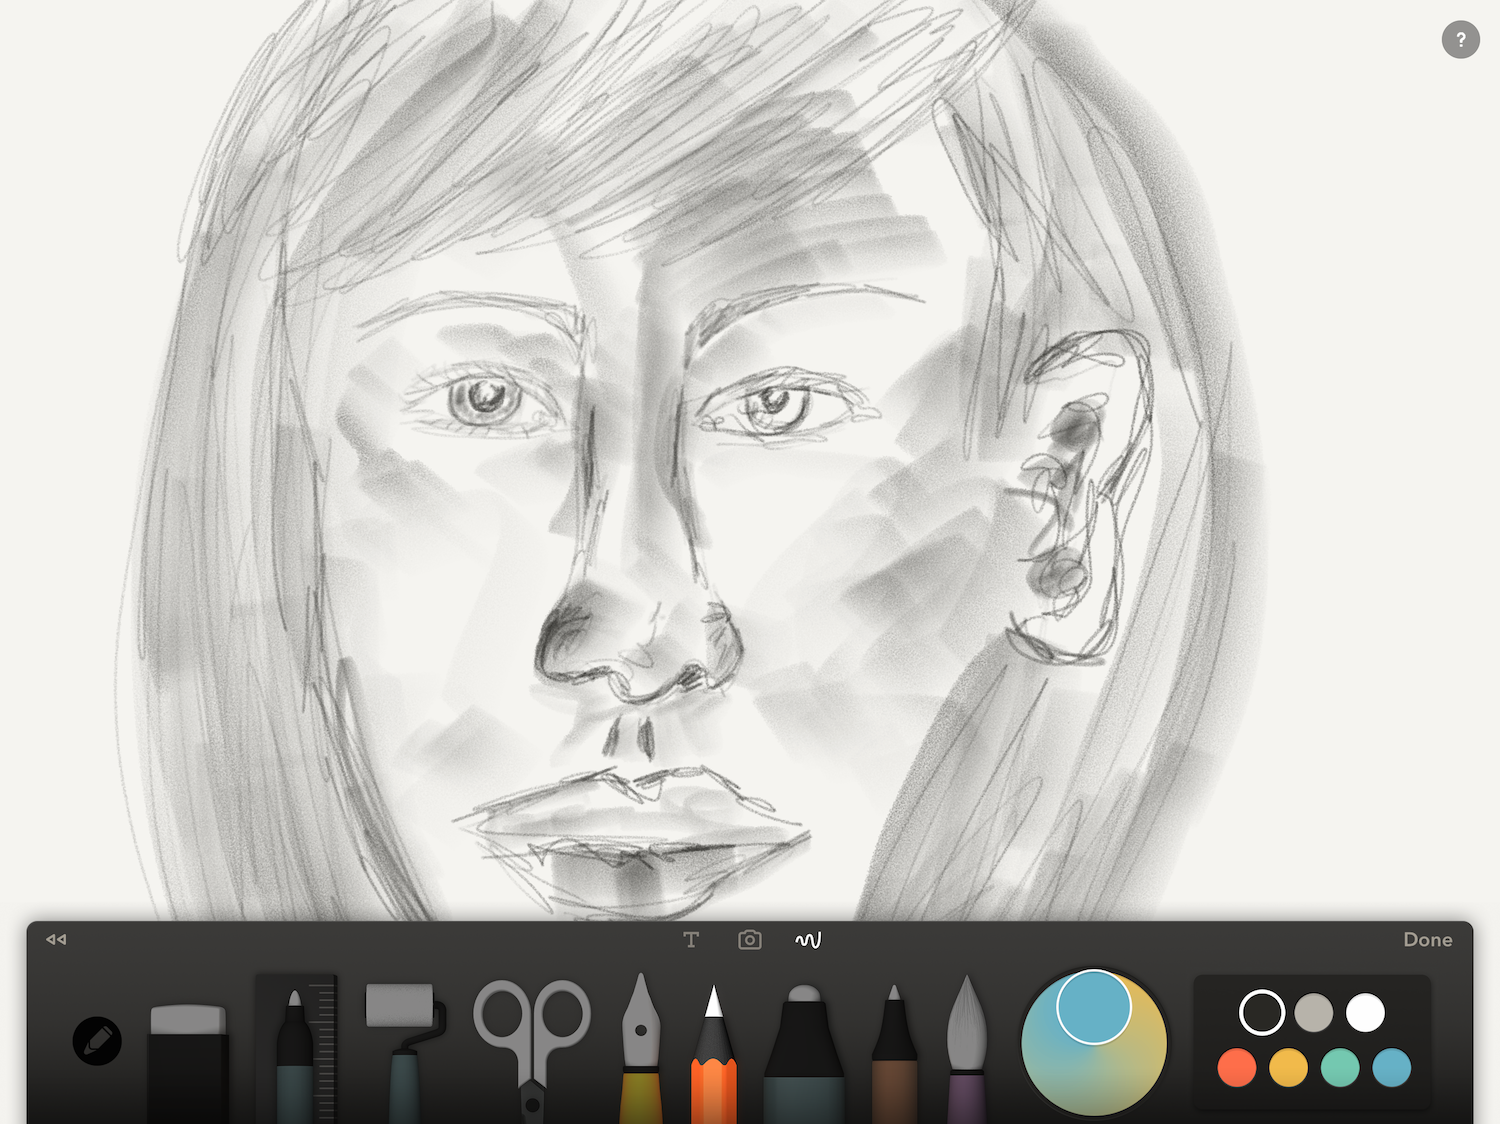 How To Draw In Word On Ipad